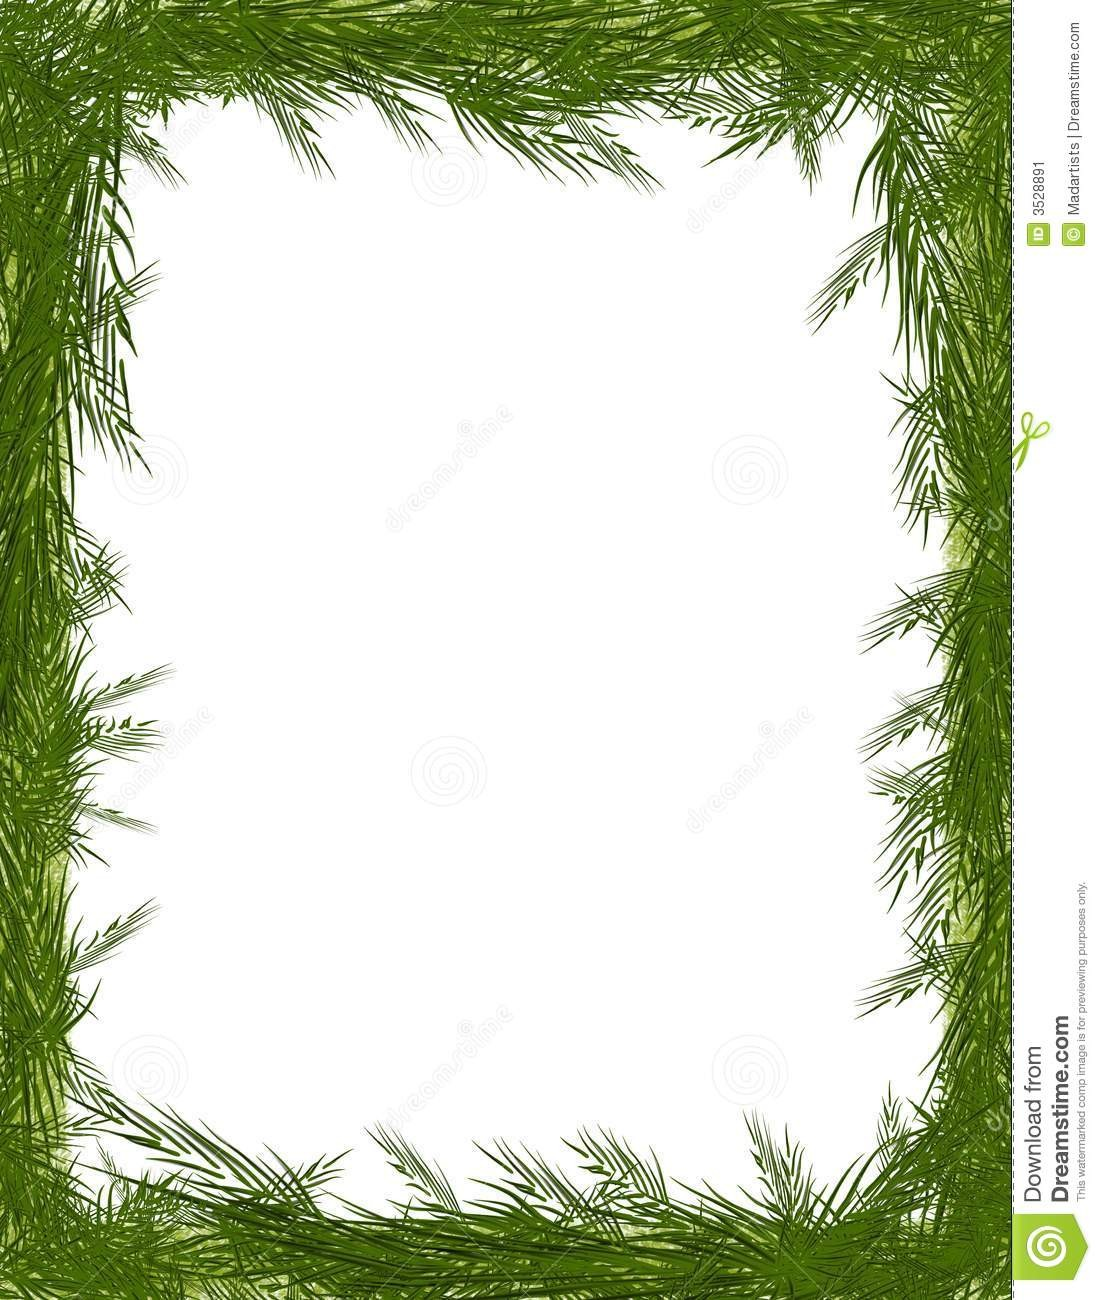 Advent border clipart picture library download Advent Border | salaharness.org picture library download